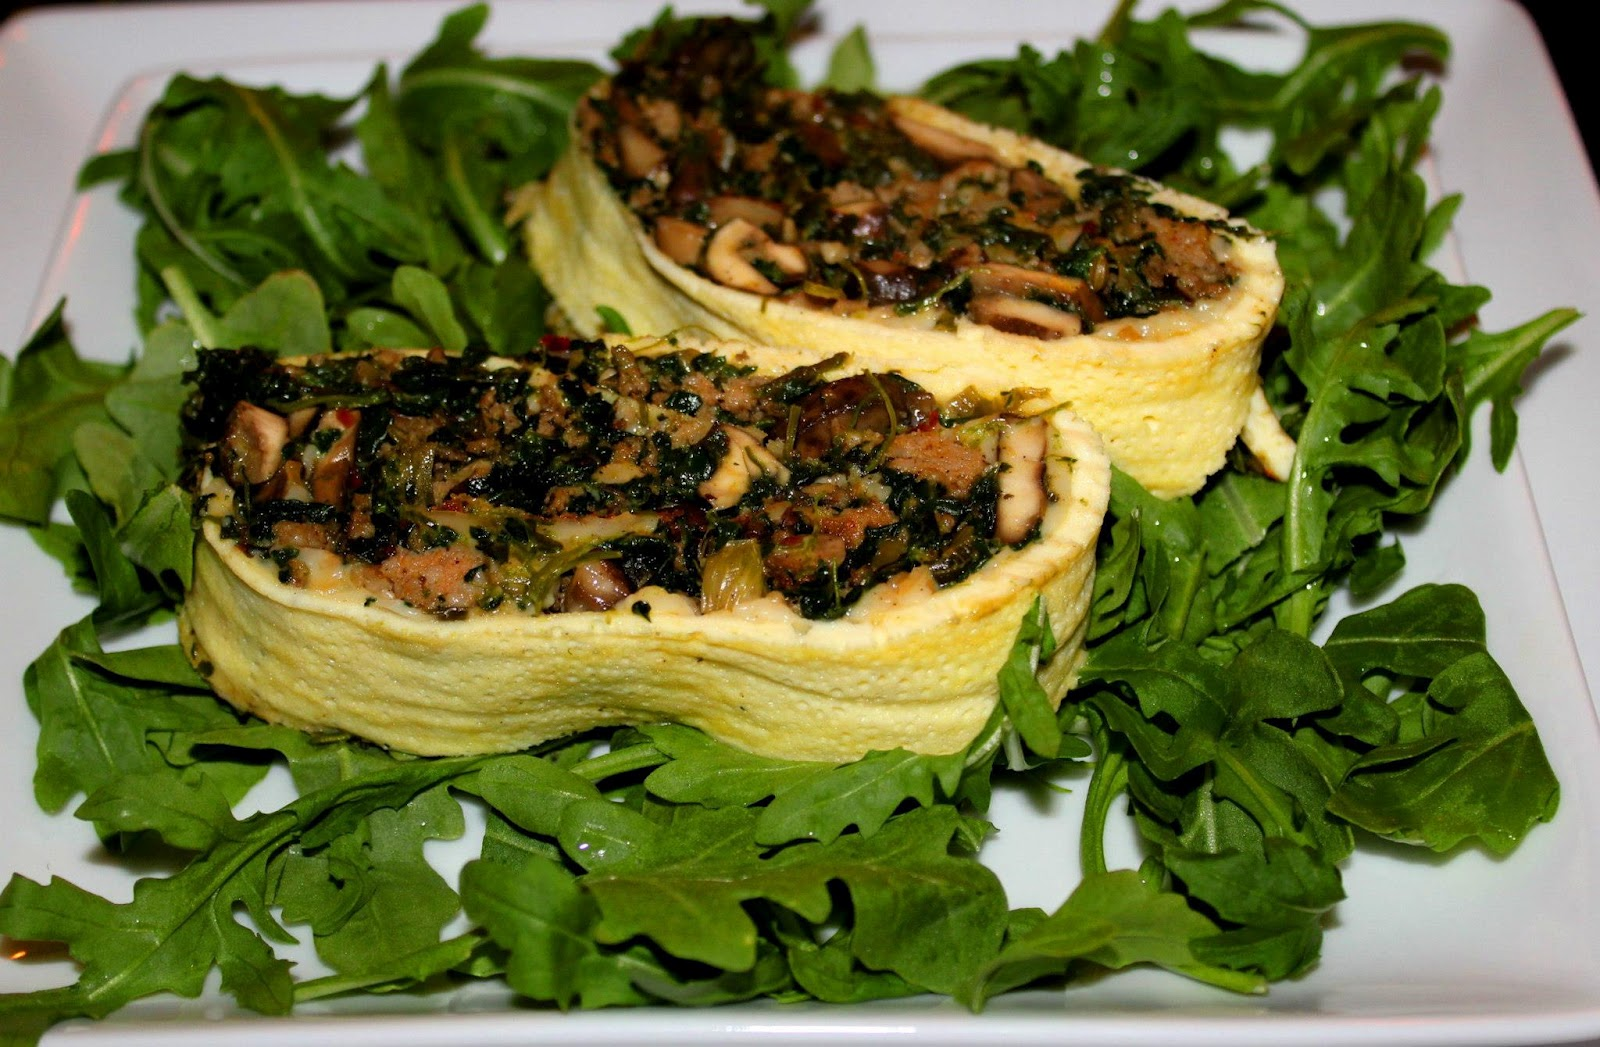 ... Roulade Stuffed with Turkey Sausage, Mushrooms, and Spinach (serves 4